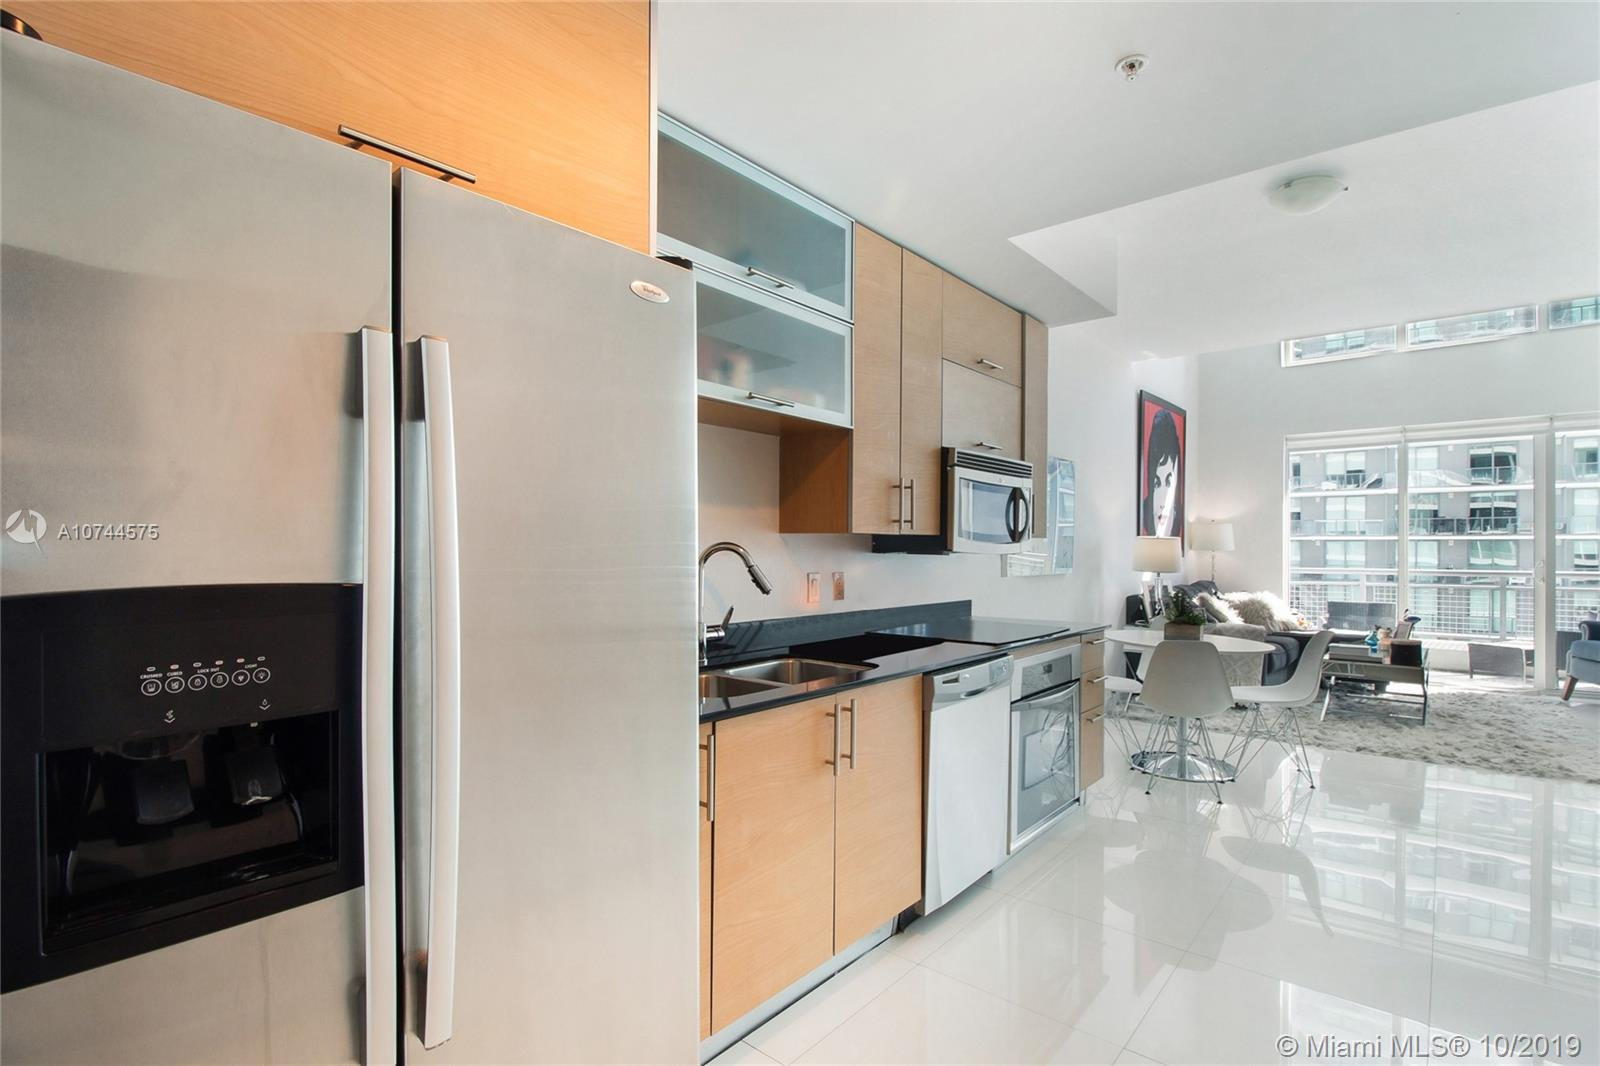 60 SW 13TH ST # 3416, Miami, Florida 33131, 1 Bedroom Bedrooms, ,2 BathroomsBathrooms,Residential,For Sale,60 SW 13TH ST # 3416,A10744575